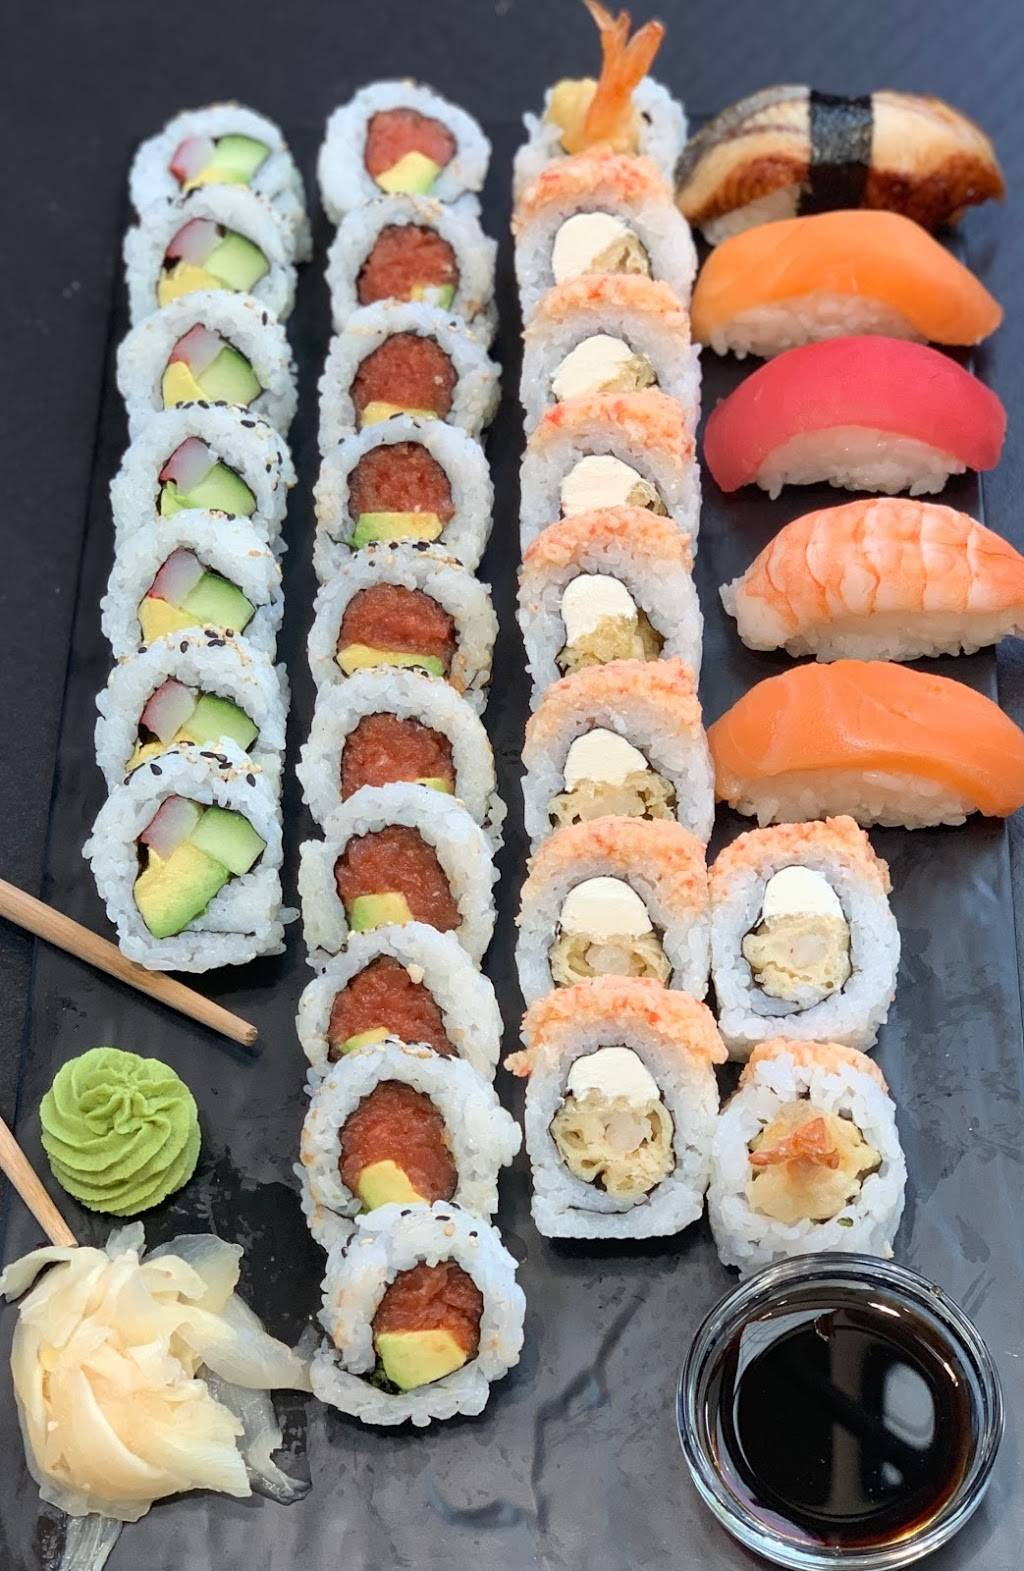 Sushiboi | meal takeaway | 2894 W Sunset Ave, Springdale, AR 72762, USA | 4694079598 OR +1 469-407-9598